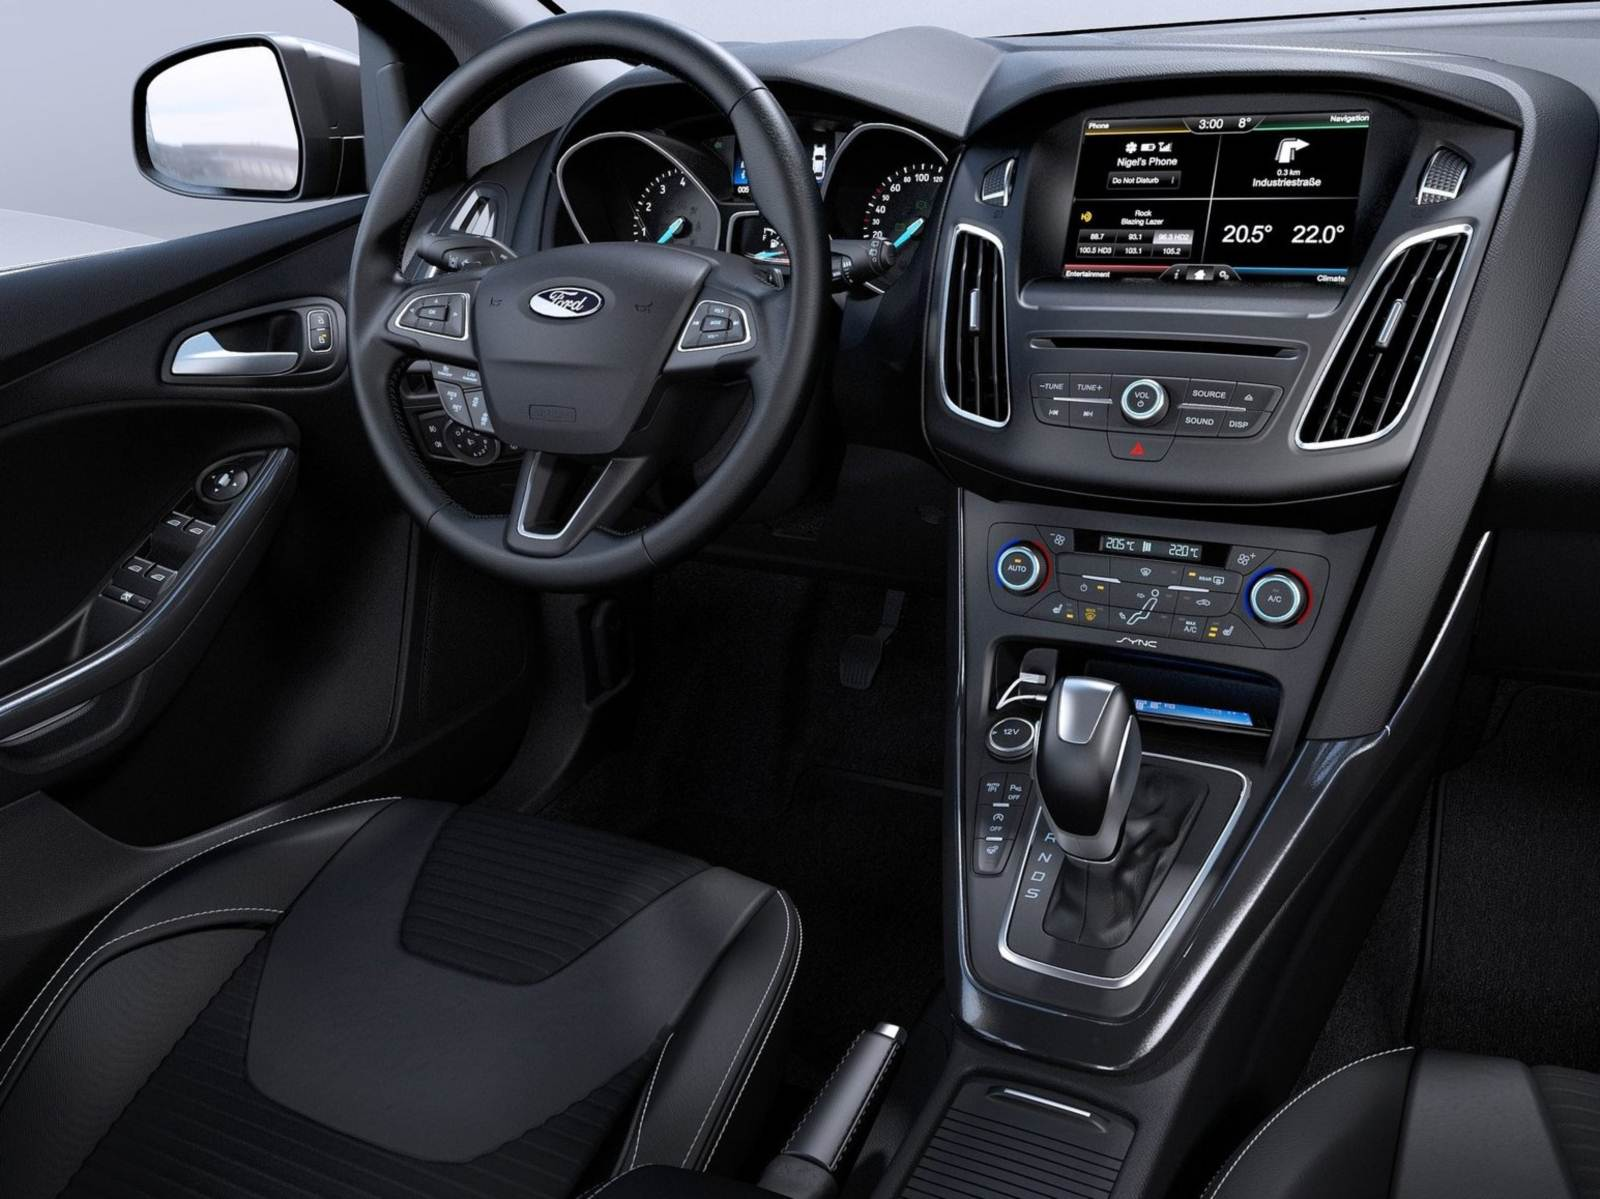 Novo Ford Focus 2015 - interior